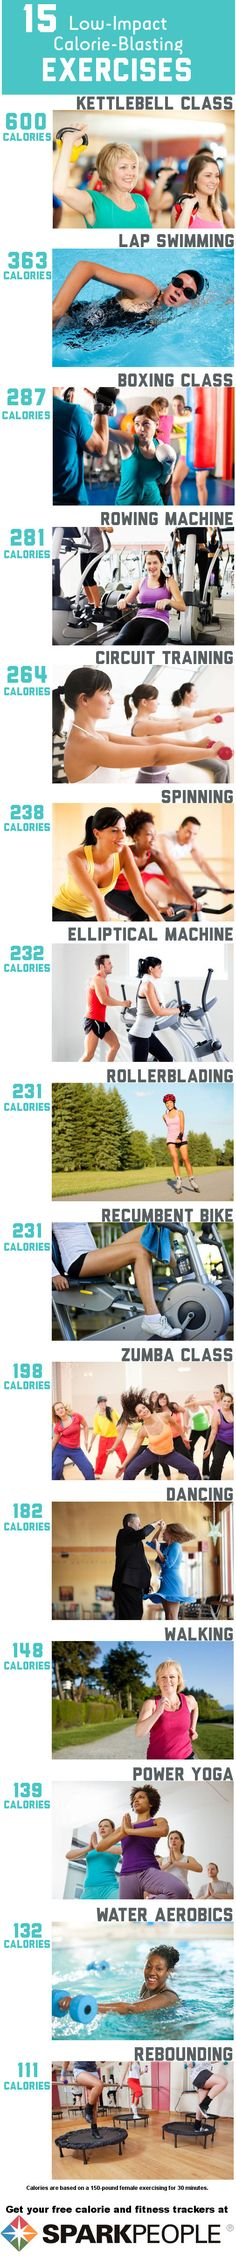 Low-Impact Exercises That Burn Major Calories | via @SparkPeople #fitness #exercise #workouts